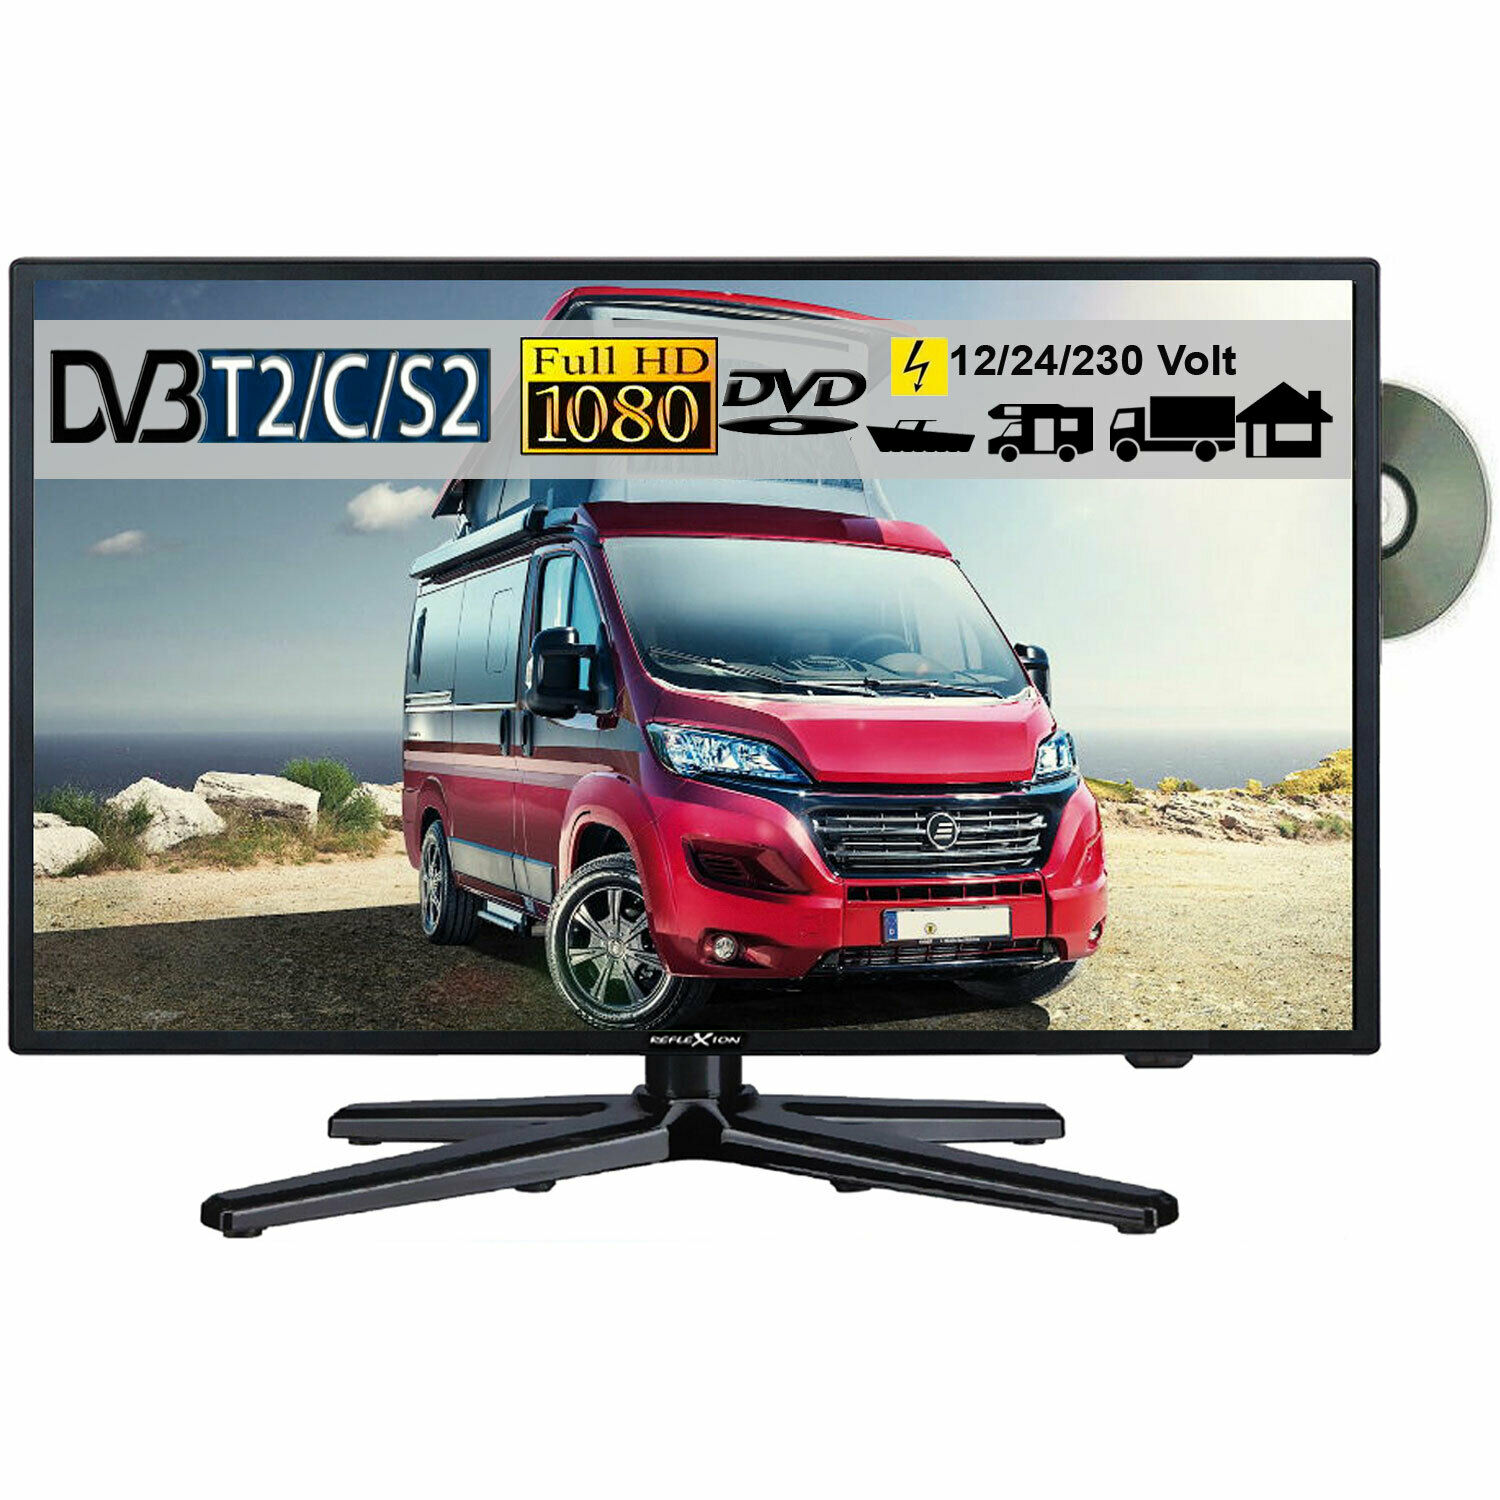 reflexion lddw22 led fernseher 21 6 zoll 56cm sat tv dvb s2 c t2 dvd 12 230v eur 249 50. Black Bedroom Furniture Sets. Home Design Ideas